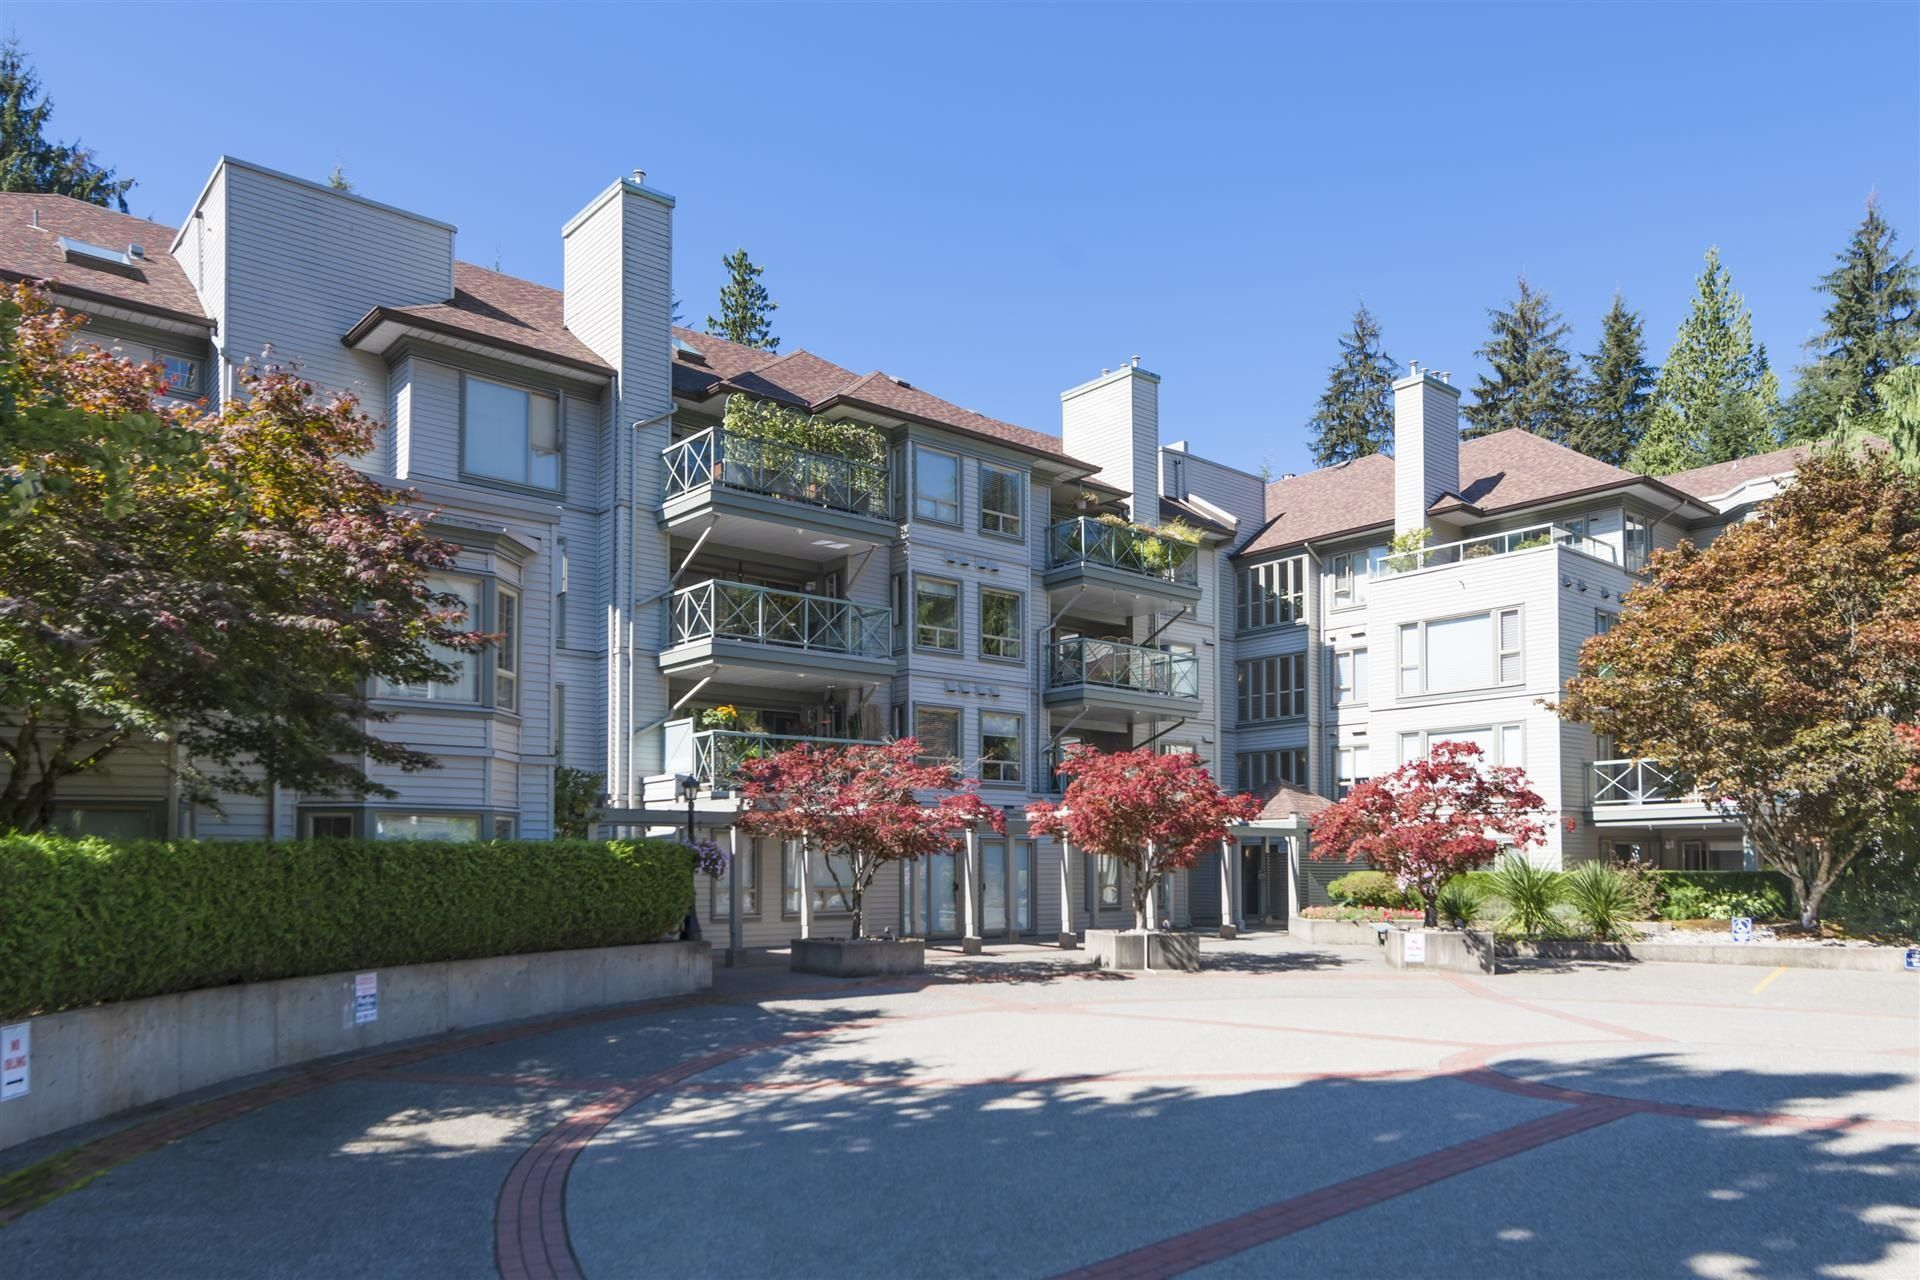 Main Photo: 3658 BANFF COURT in North Vancouver: Northlands Condo for sale : MLS®# R2615163